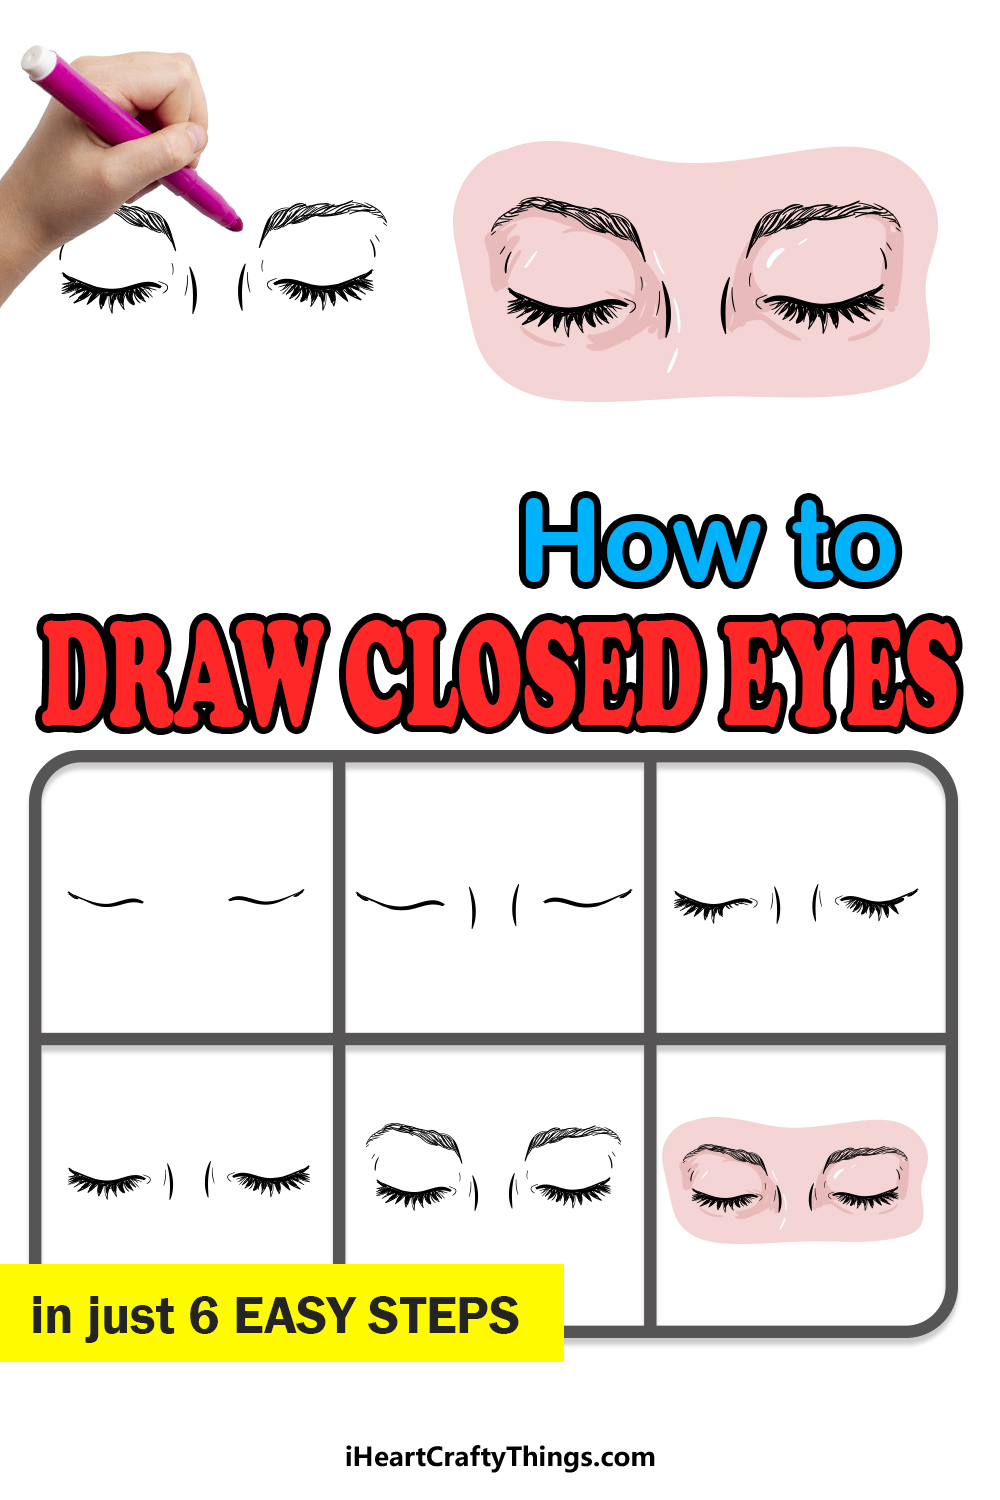 how to draw closed eyes in 6 easy steps